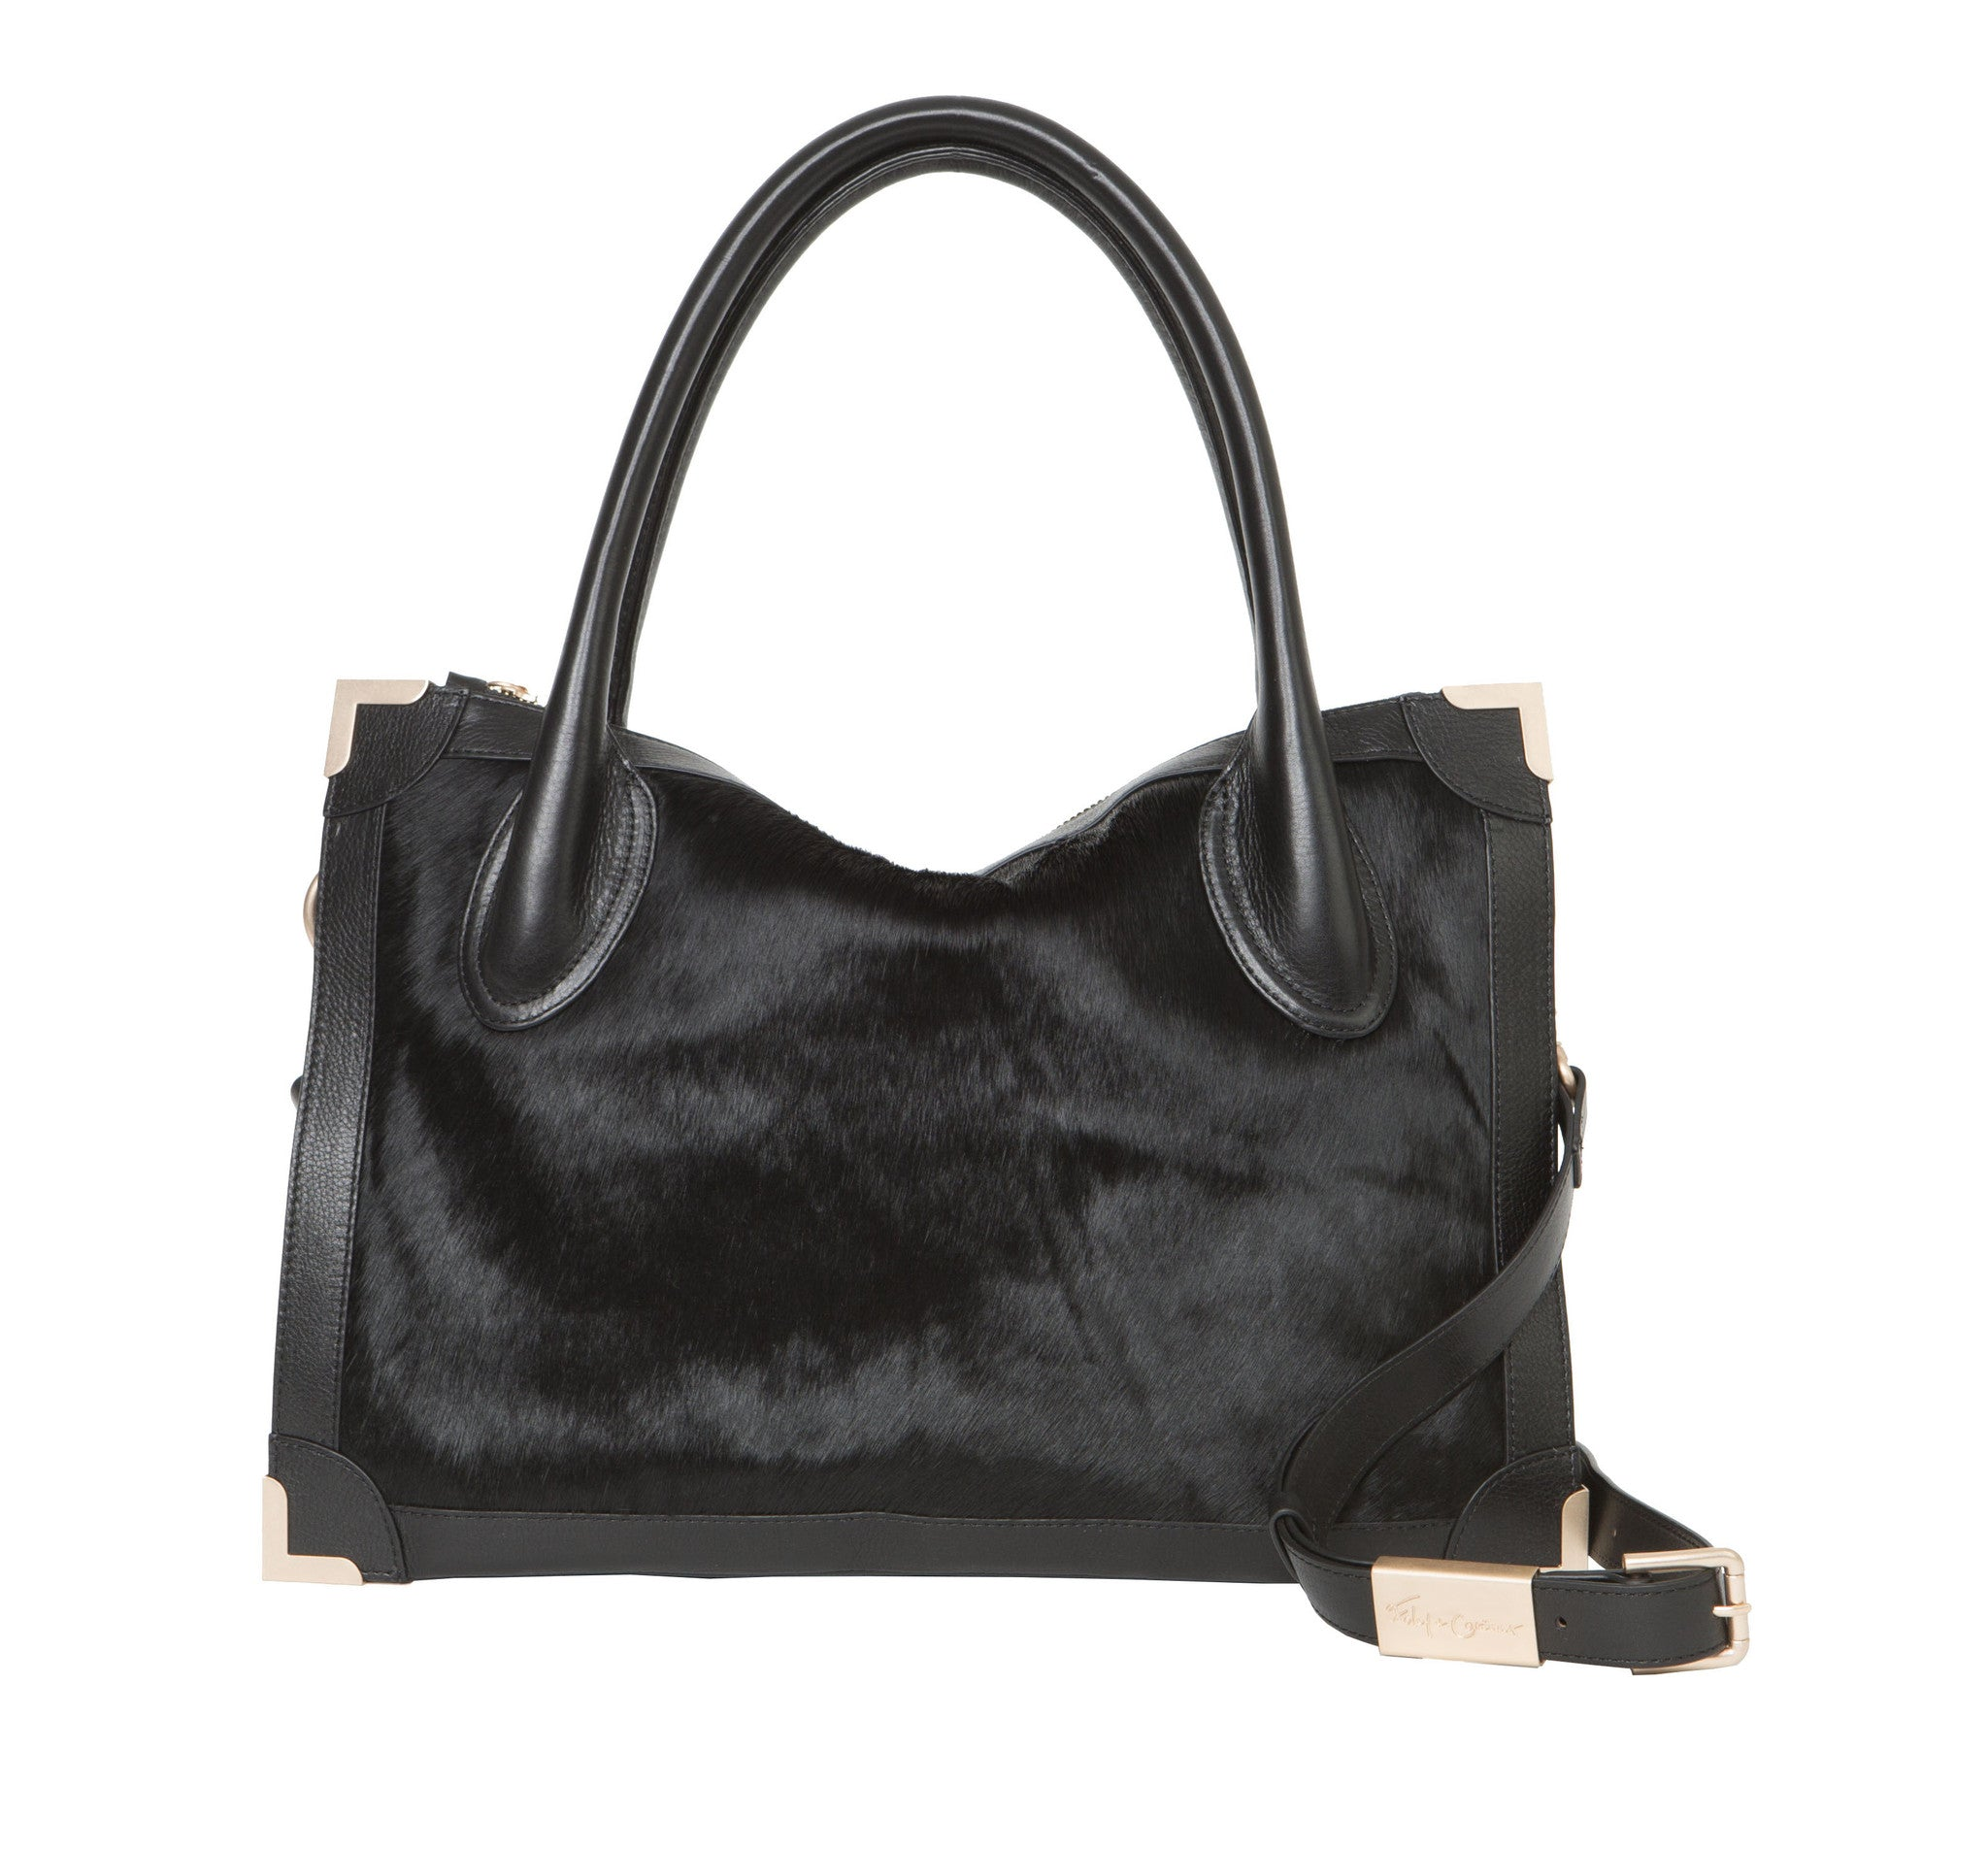 FRANKIE SATCHEL IN BLACK HAIRCALF